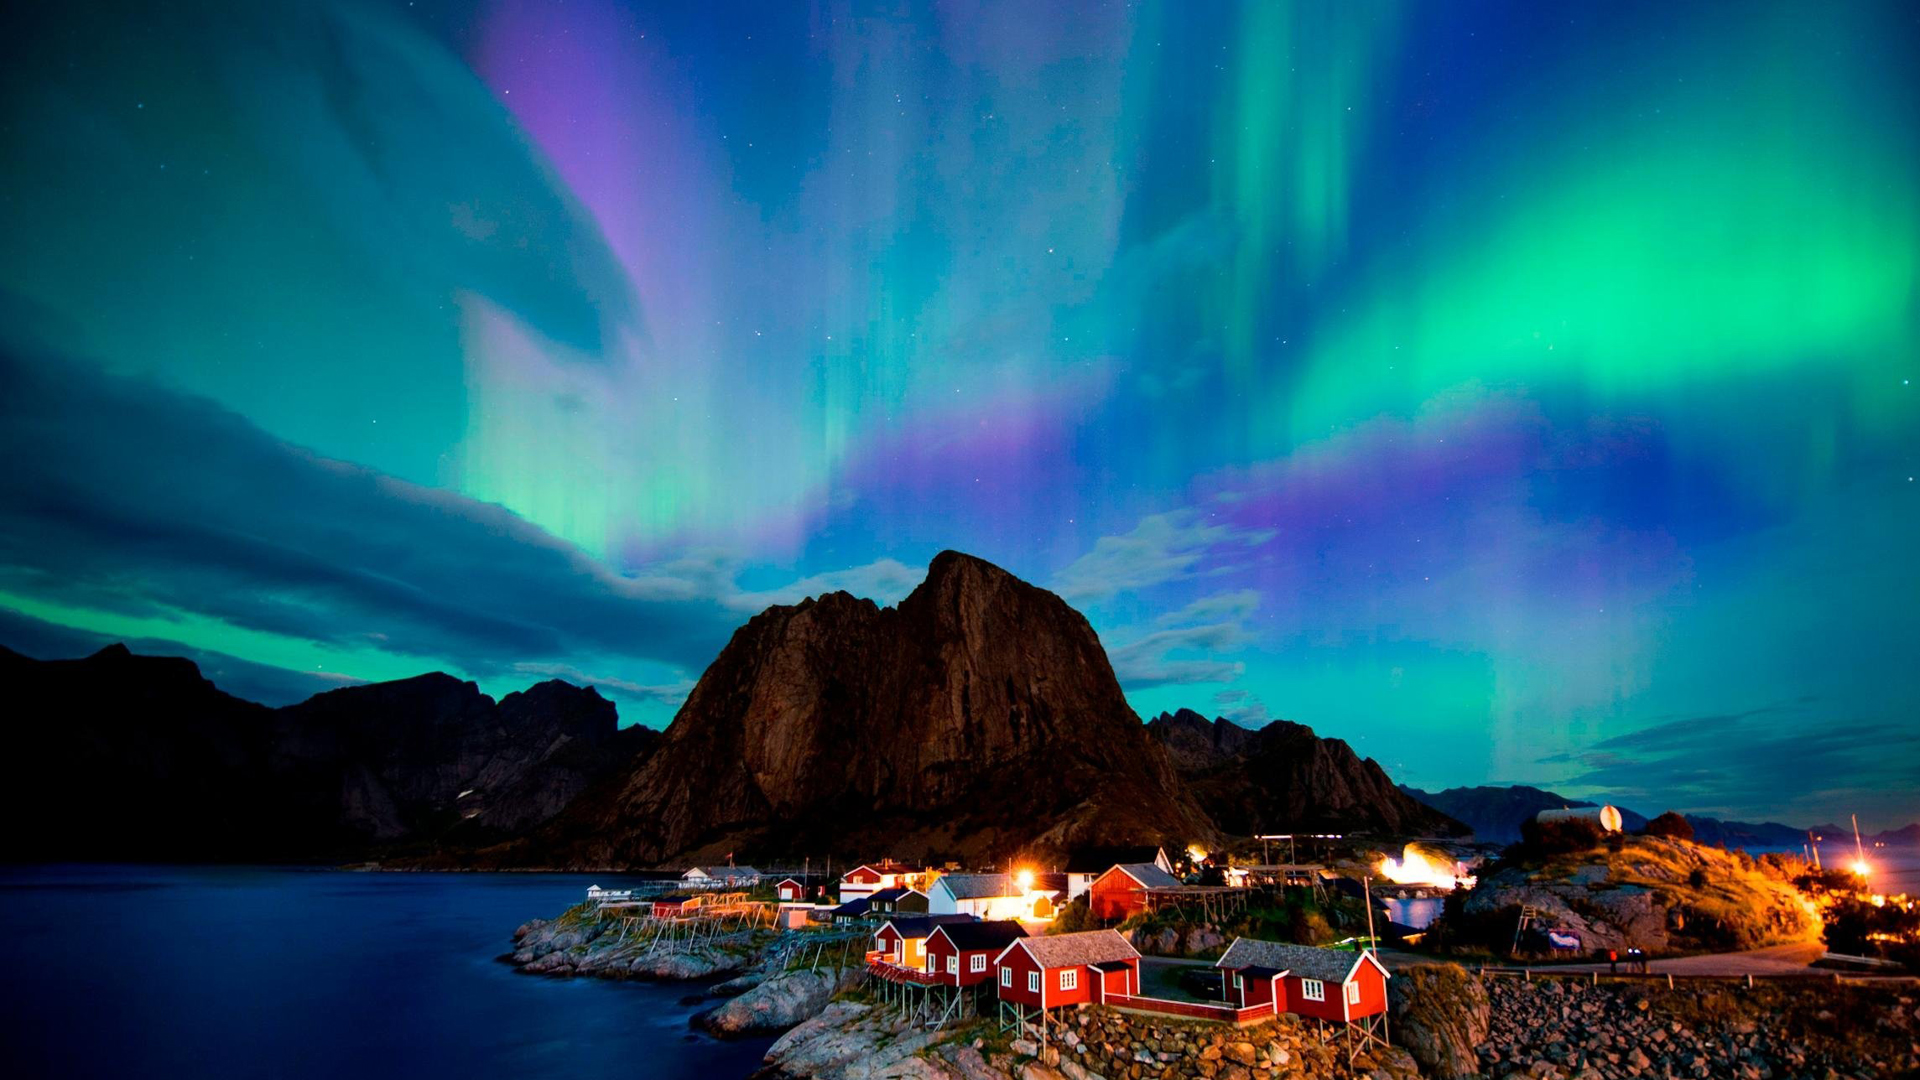 The northern lights are seen in a file photo. (Credit: AFP / Getty Images)